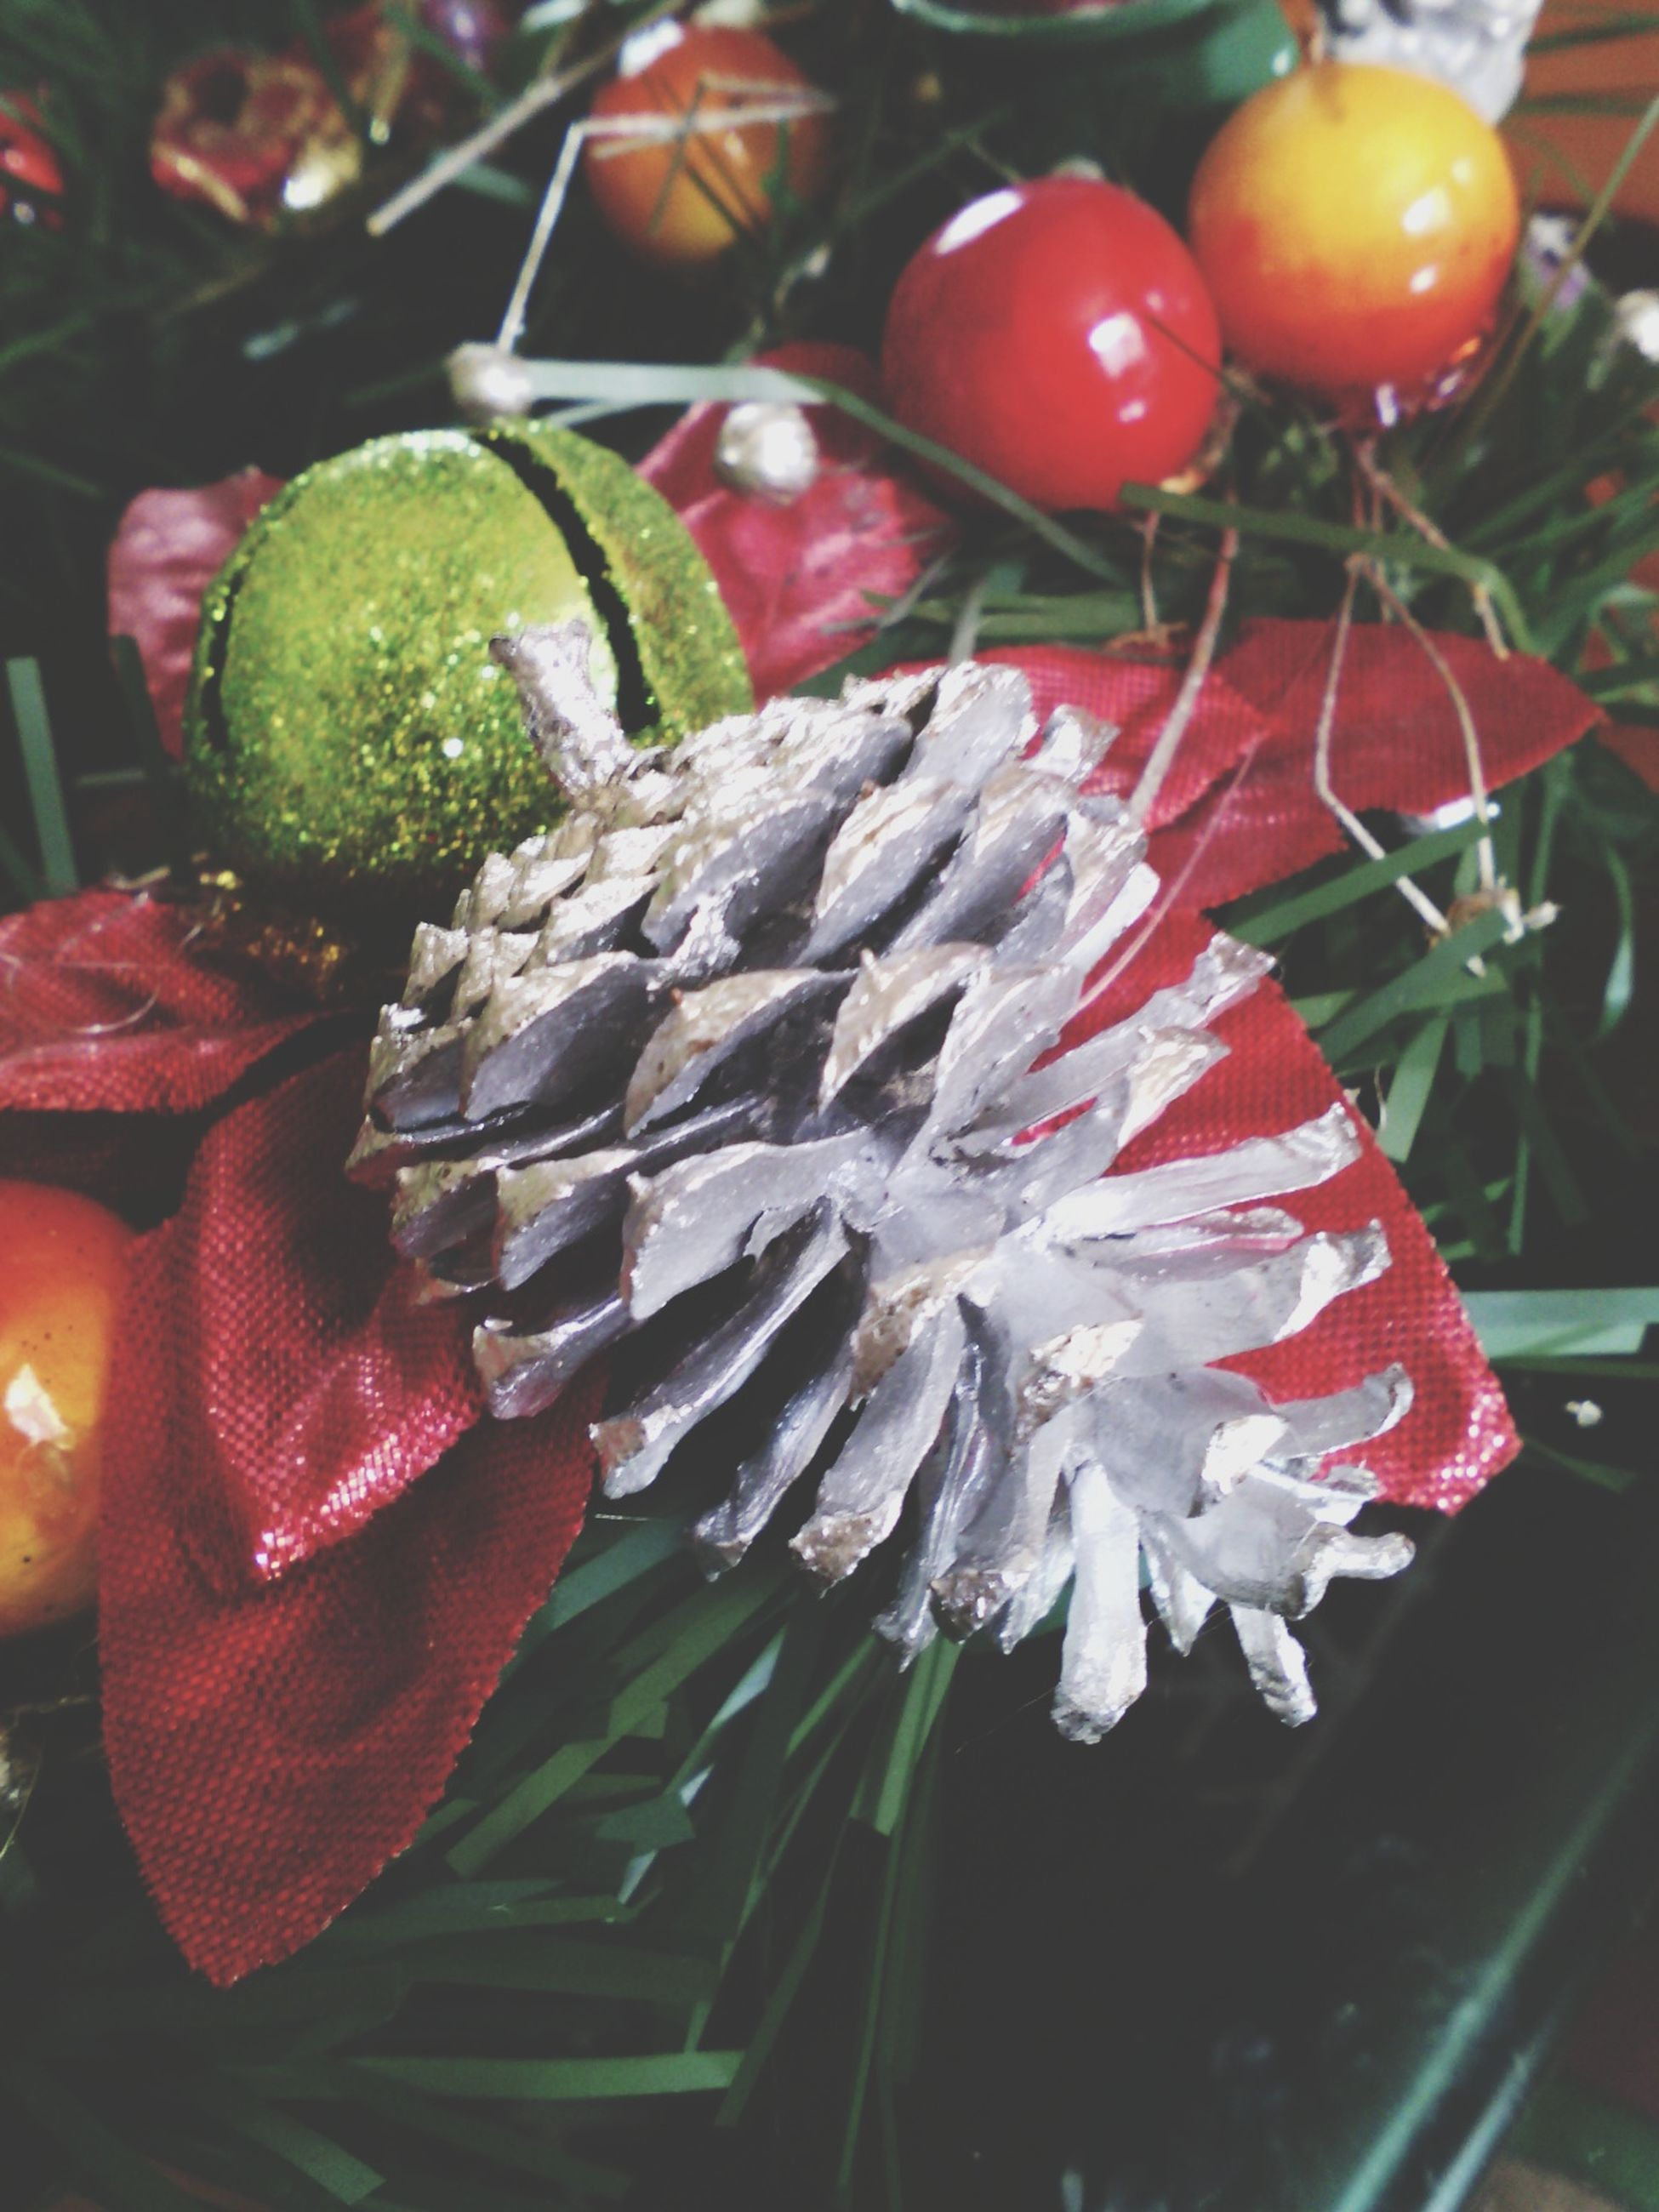 freshness, close-up, high angle view, flower, plant, indoors, red, focus on foreground, growth, no people, fragility, nature, leaf, potted plant, day, food and drink, table, still life, beauty in nature